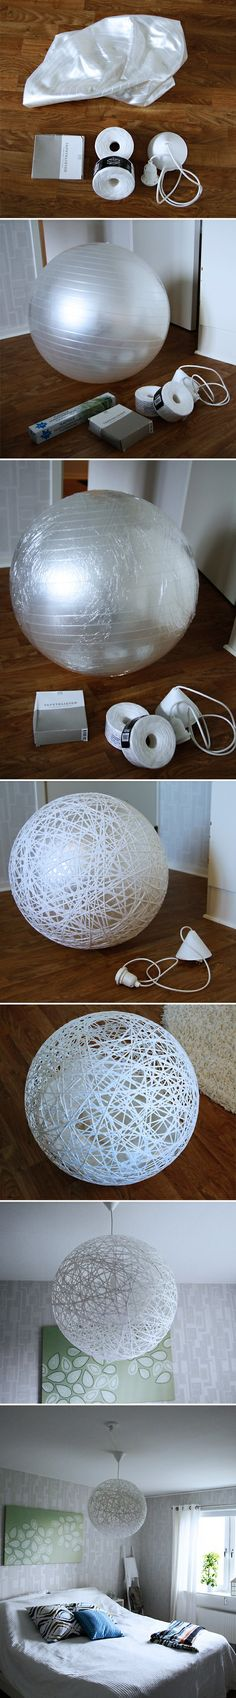 #DIY - lighting!